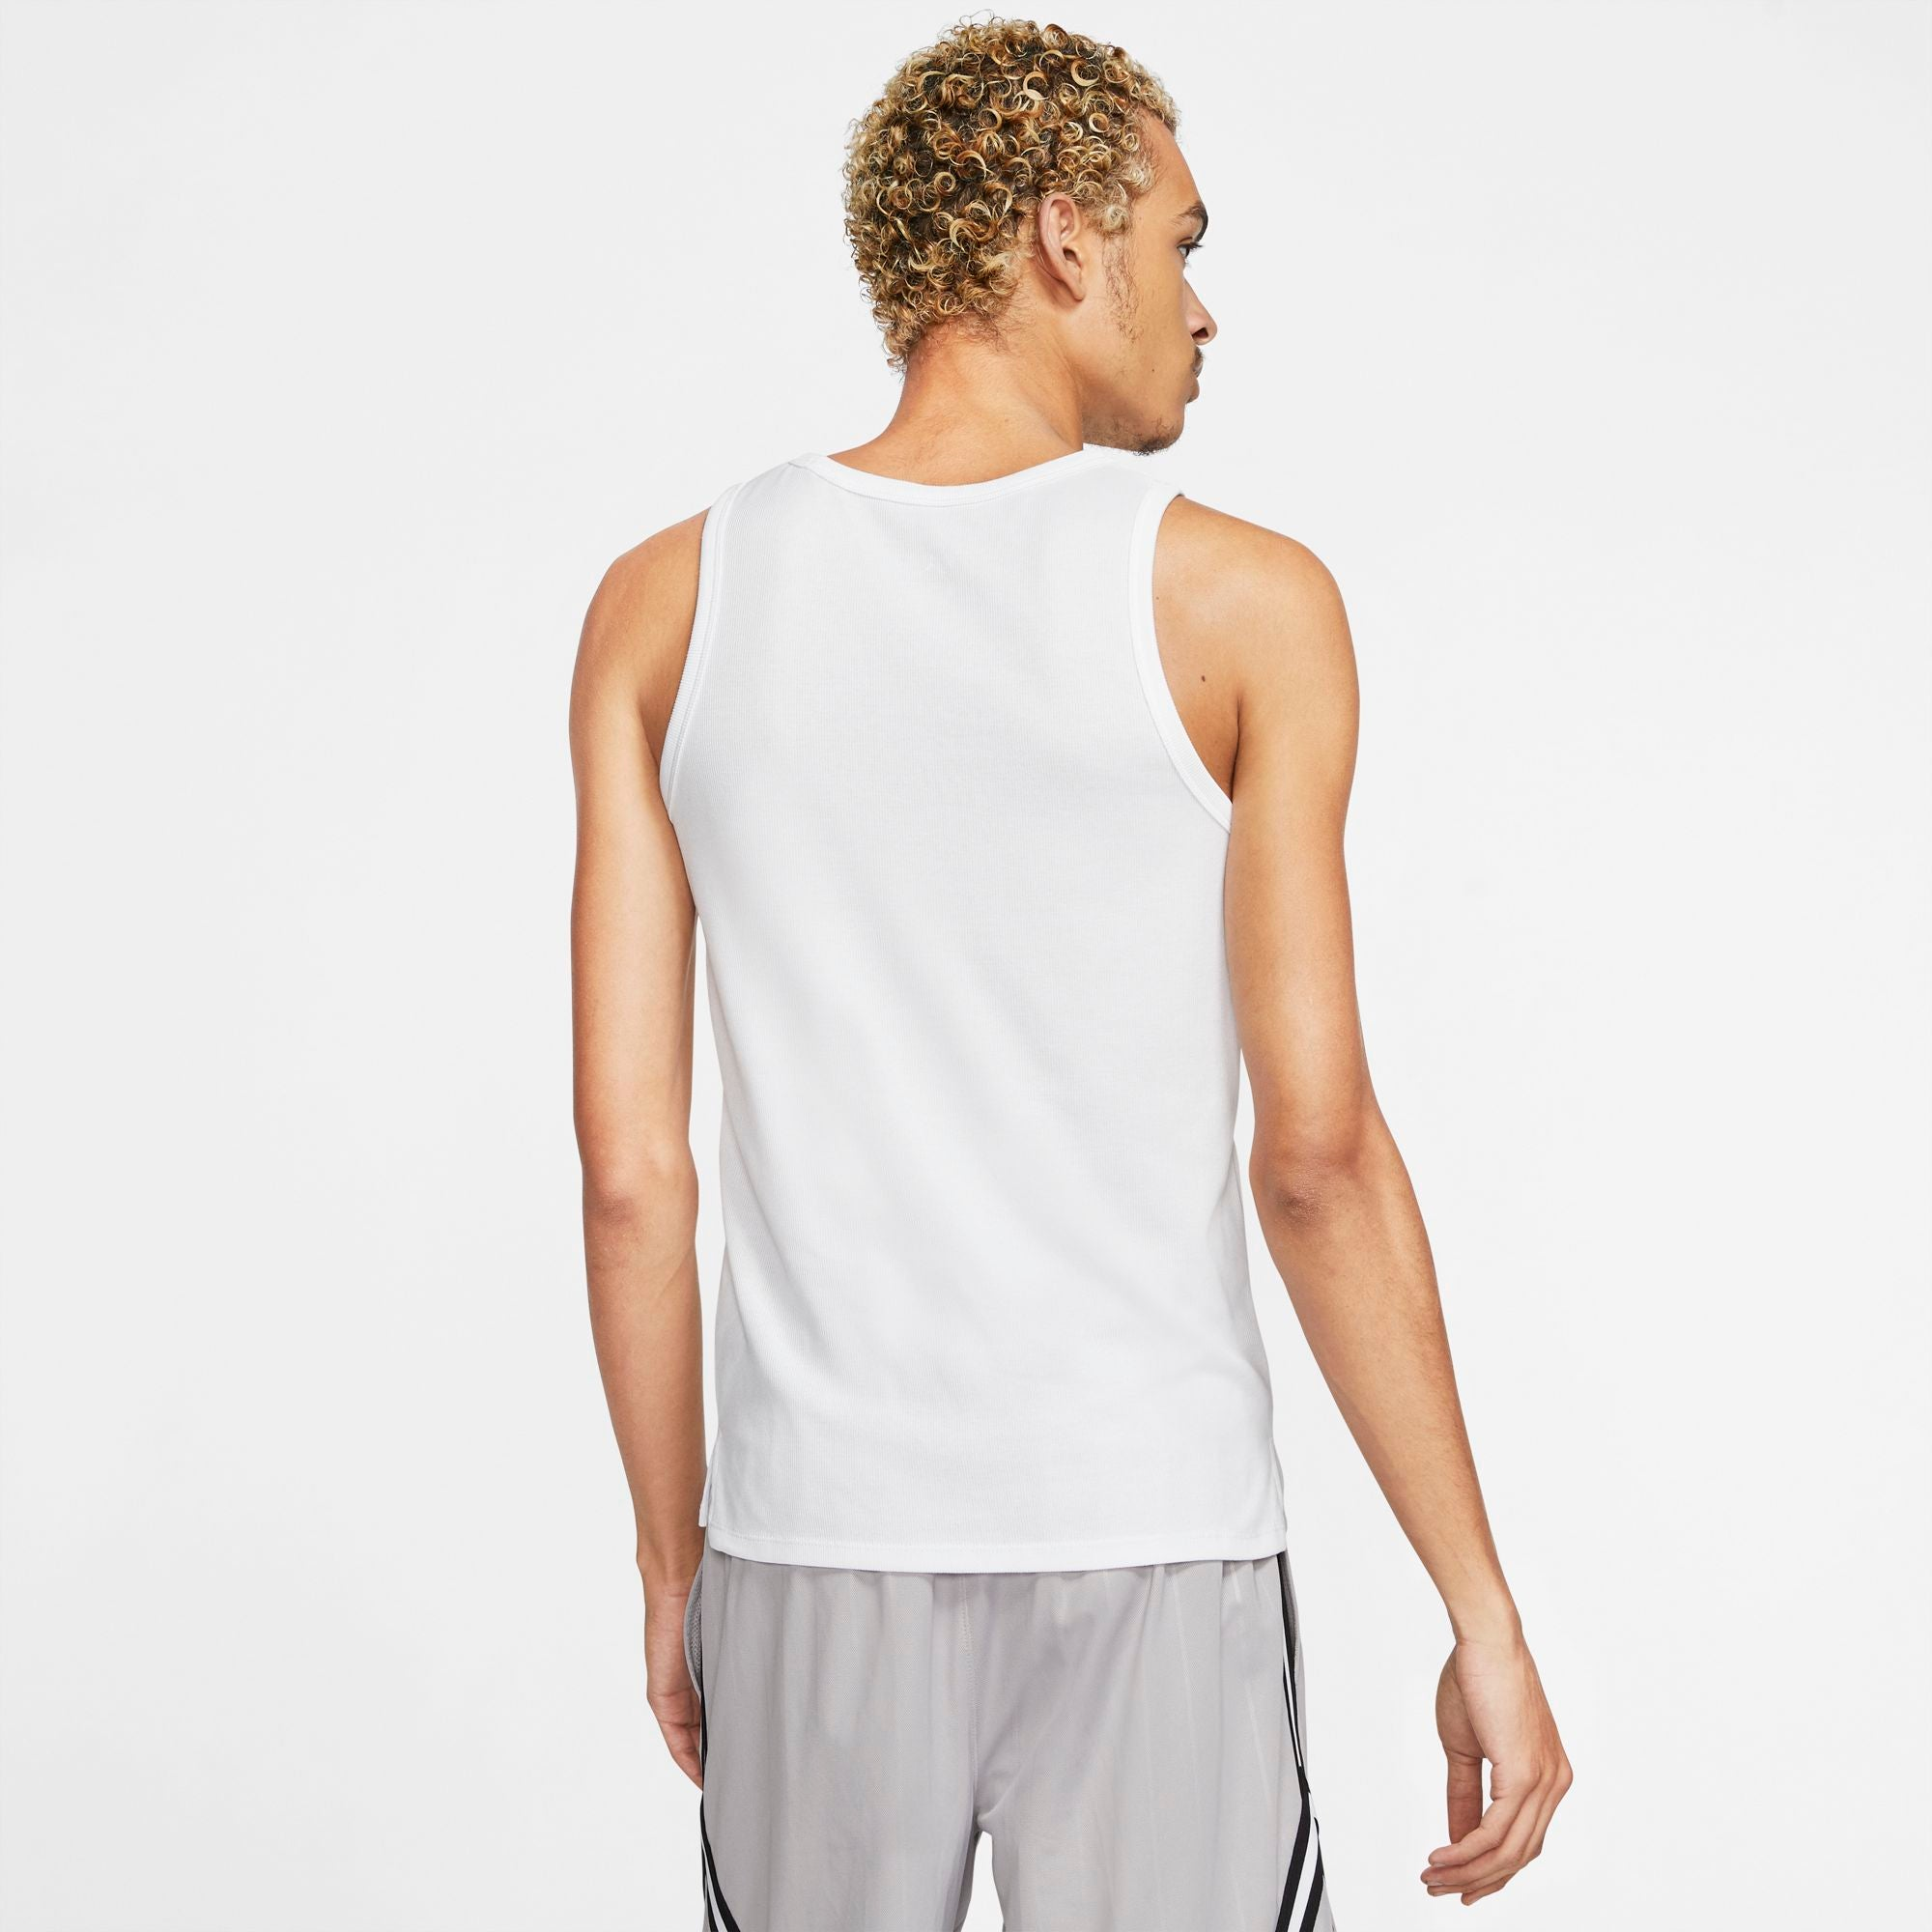 Nike Jordan 23 Alpha Buzzer Beater Basketball Tank - White/Black